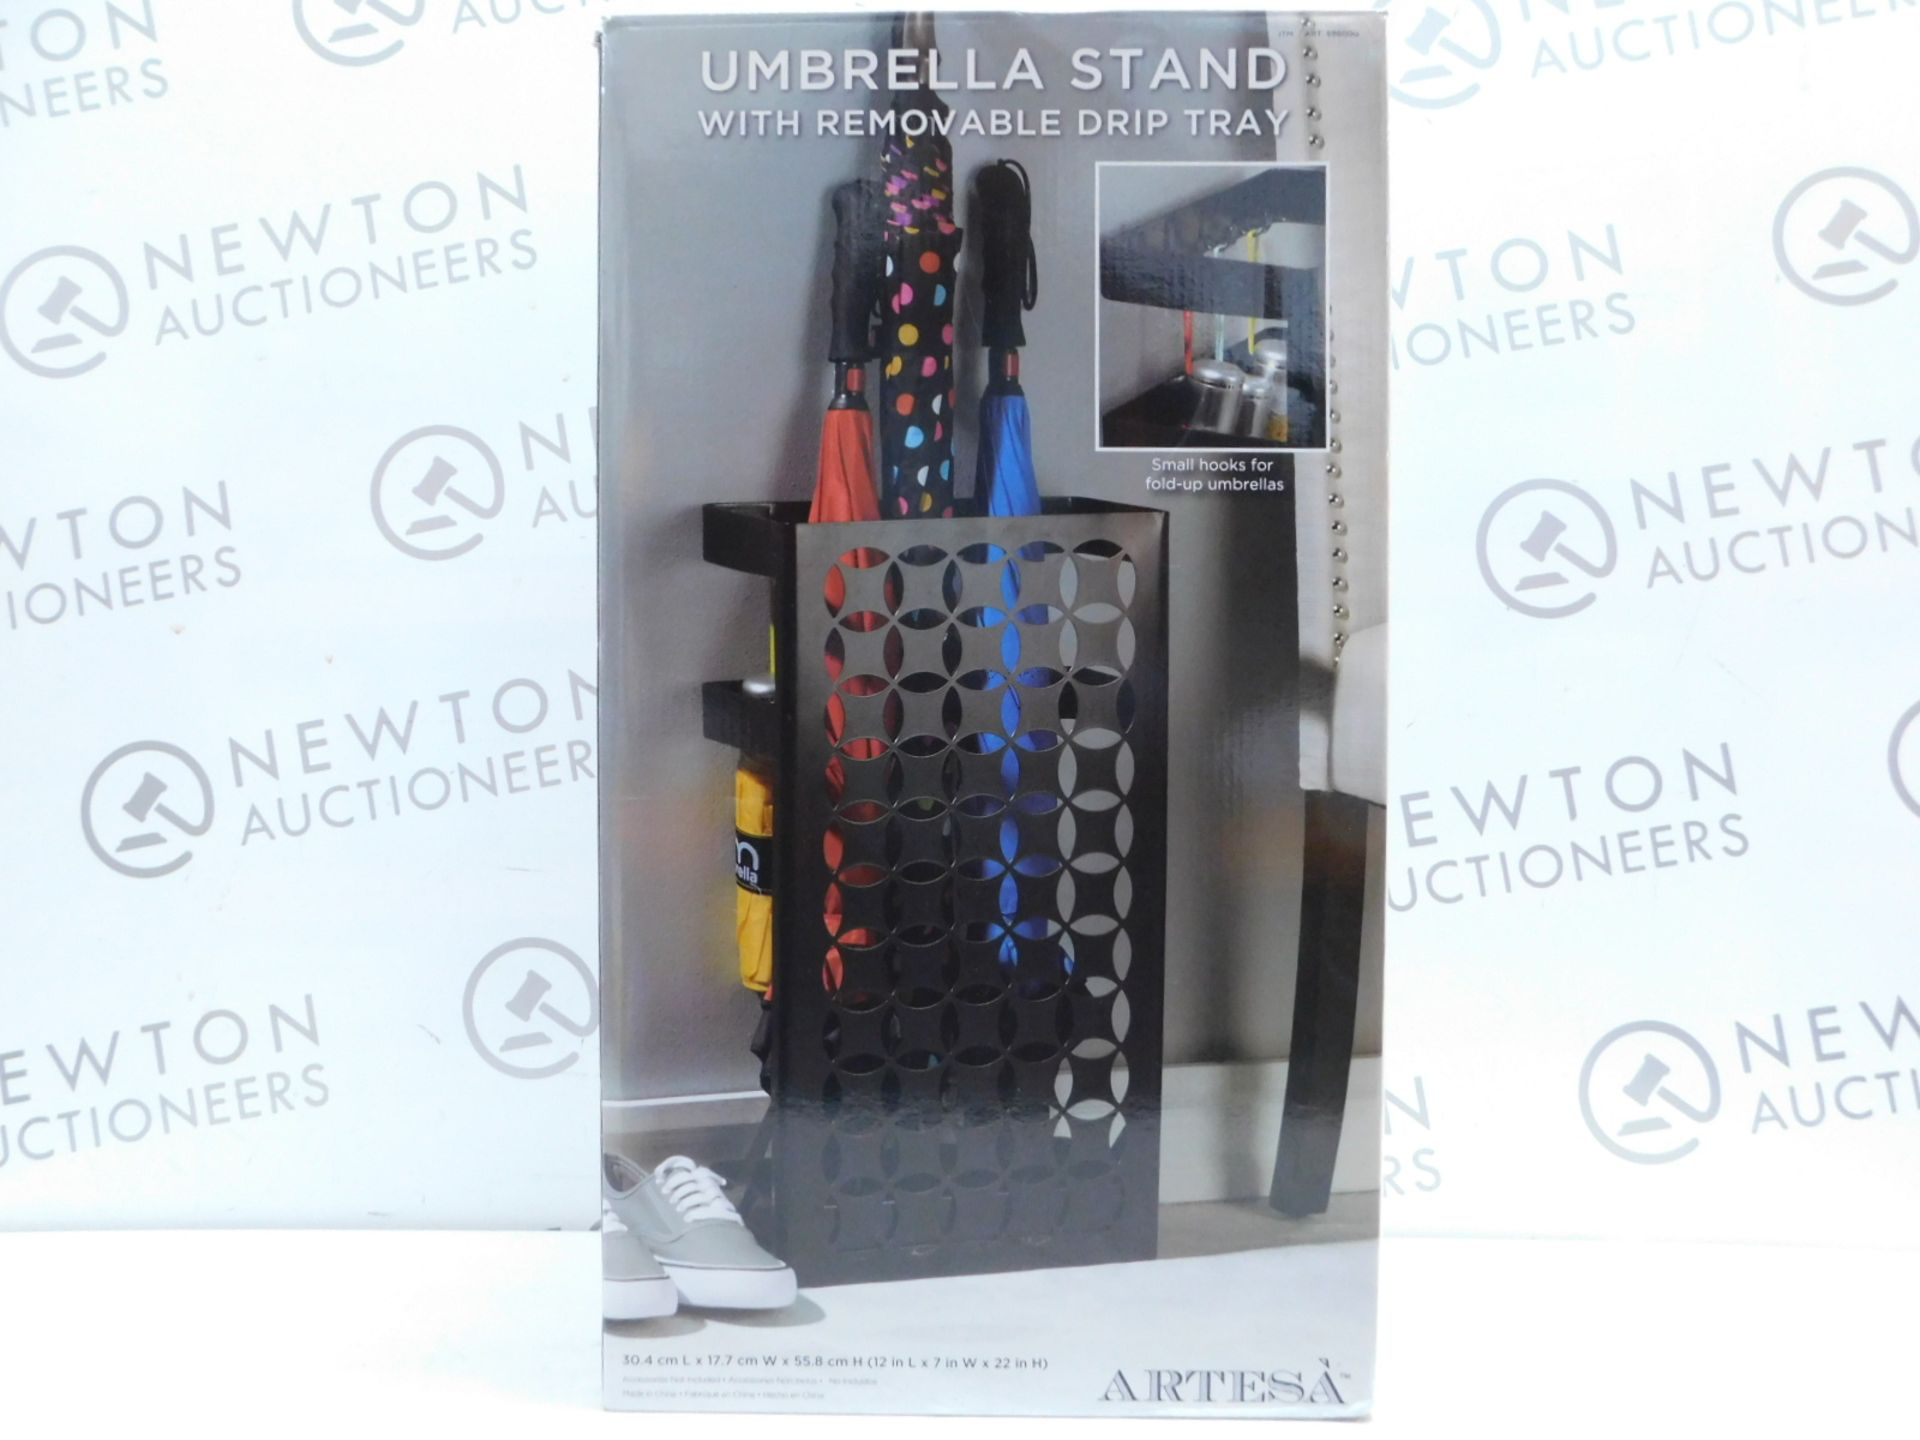 Lot 6 - 1 BRAND NEW BOXED ARTESA UMBRELLA STAND WITH REMOVABLE DRIP TRAY RRP £44.99